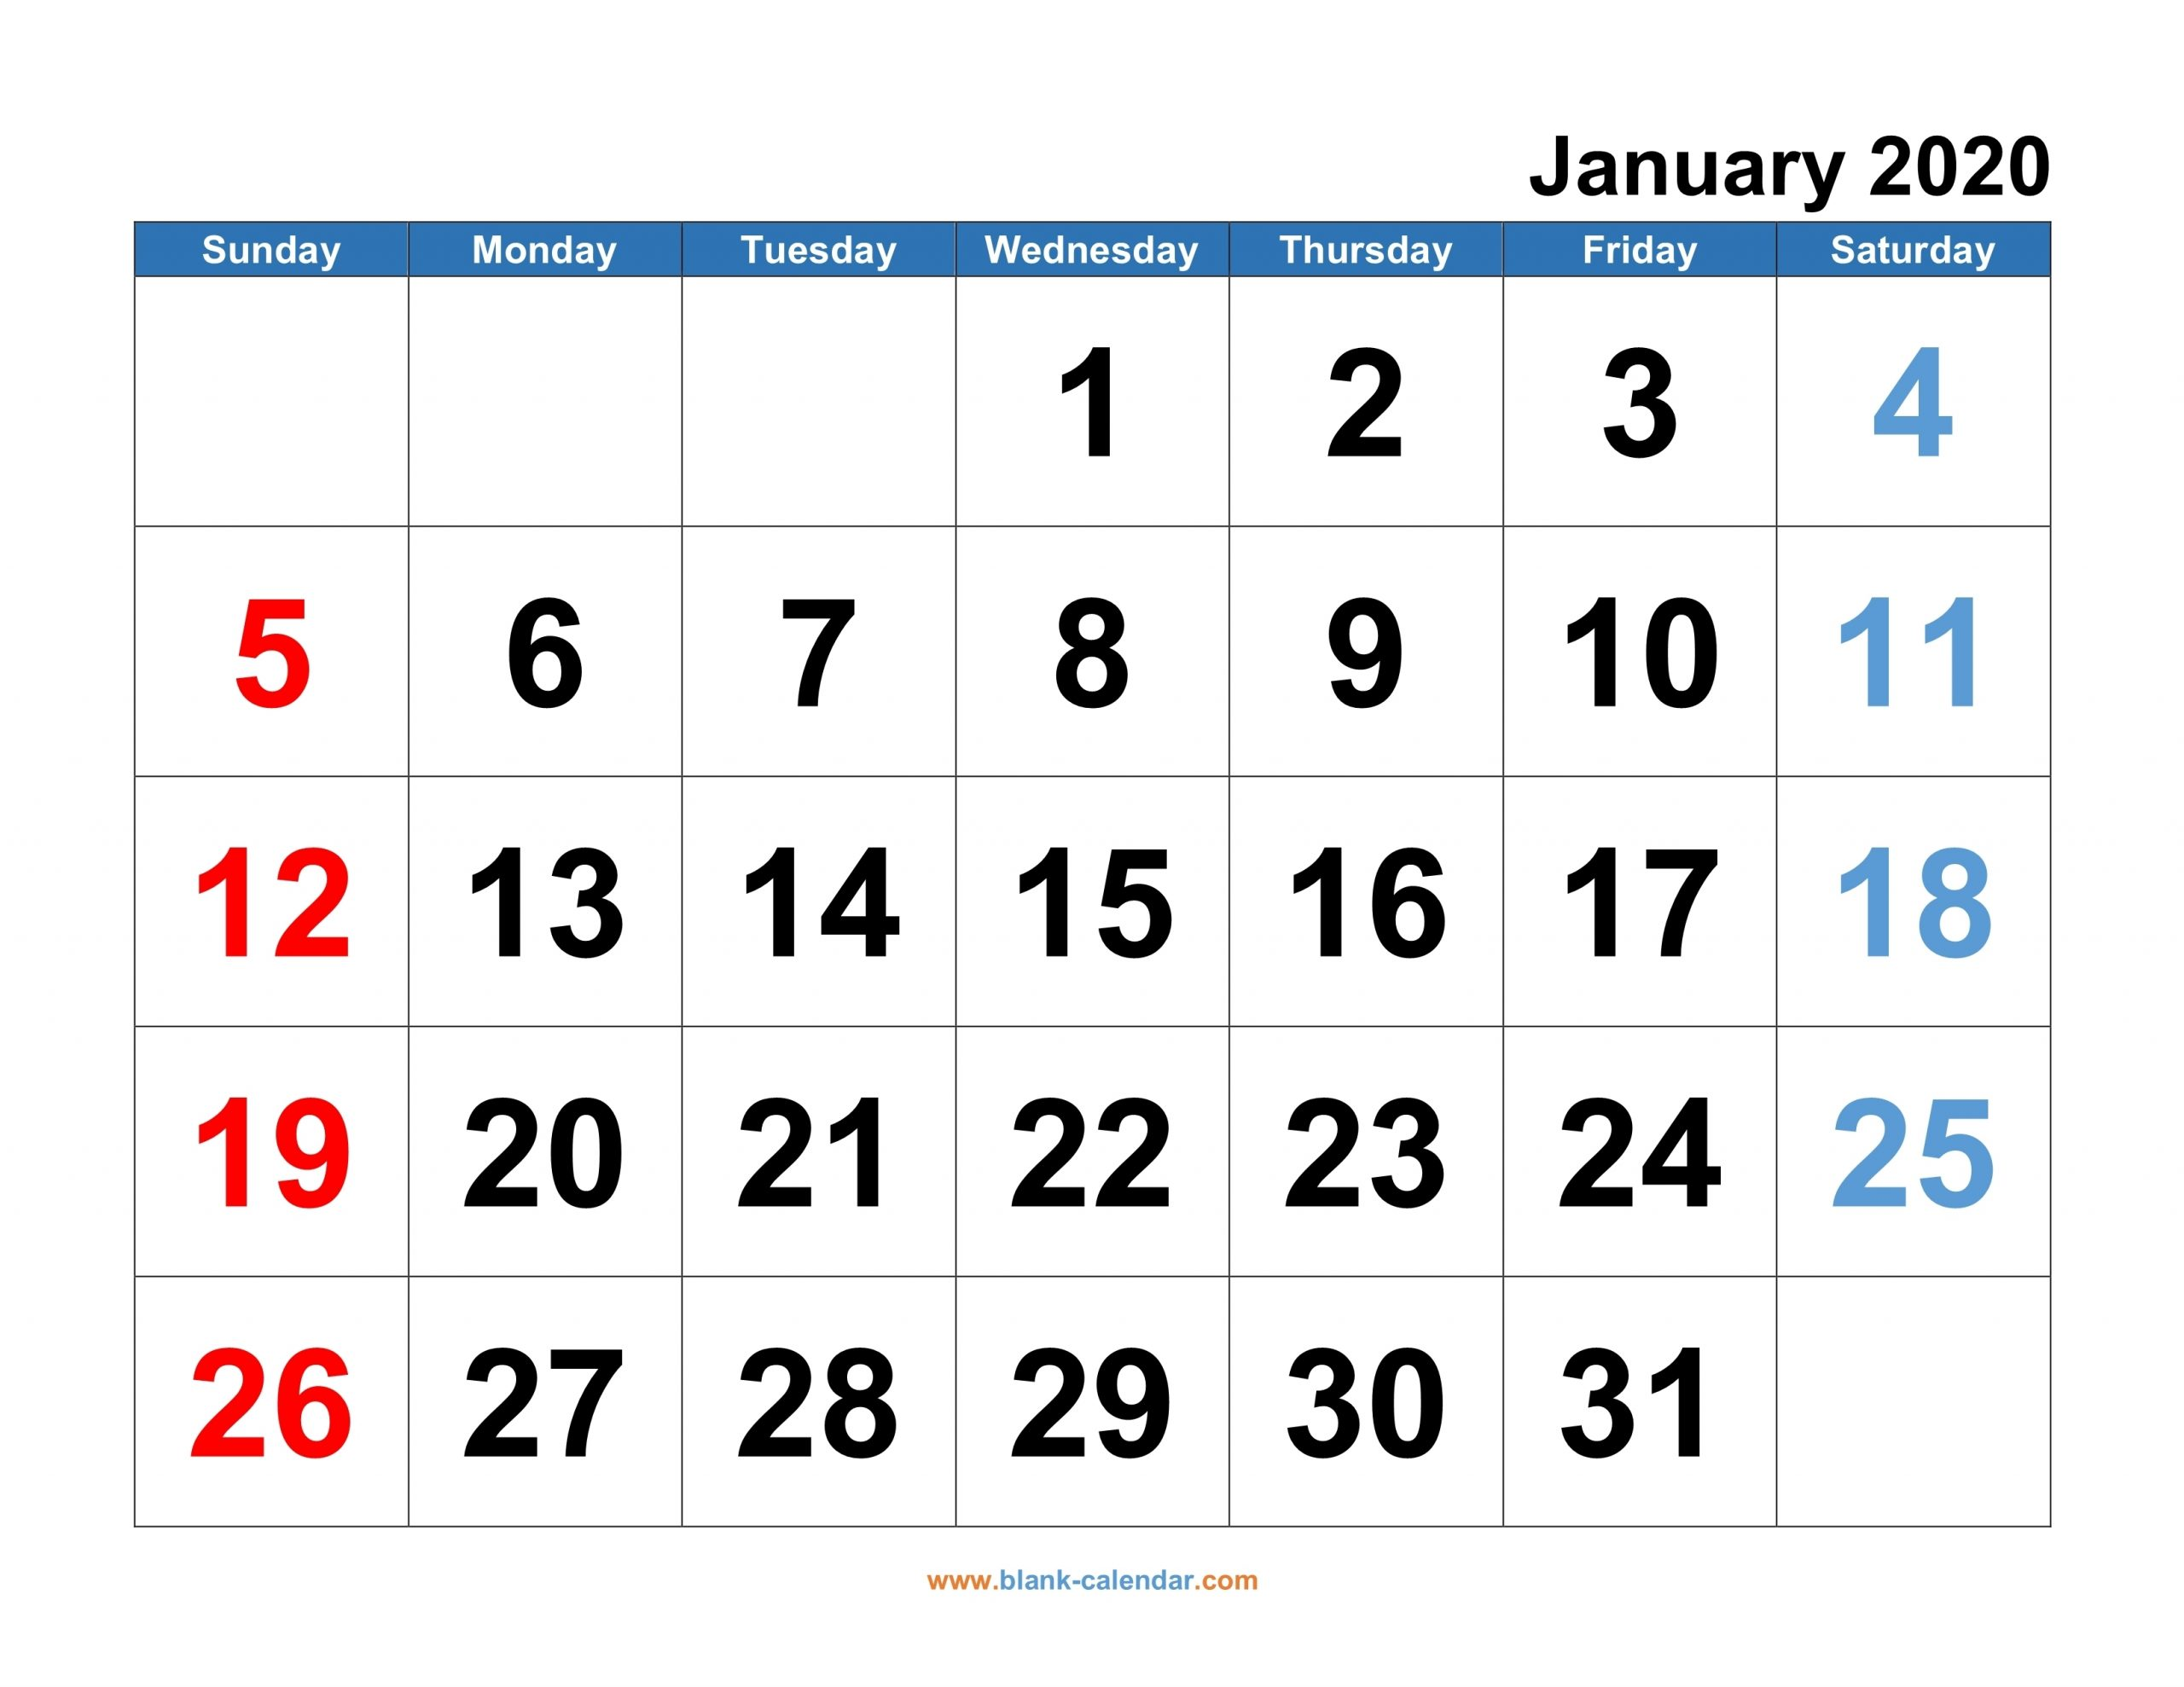 Monthly Calendar 2020 | Free Download, Editable And Printable regarding Printable 2020 Calendar Monthly No Download Free Excel